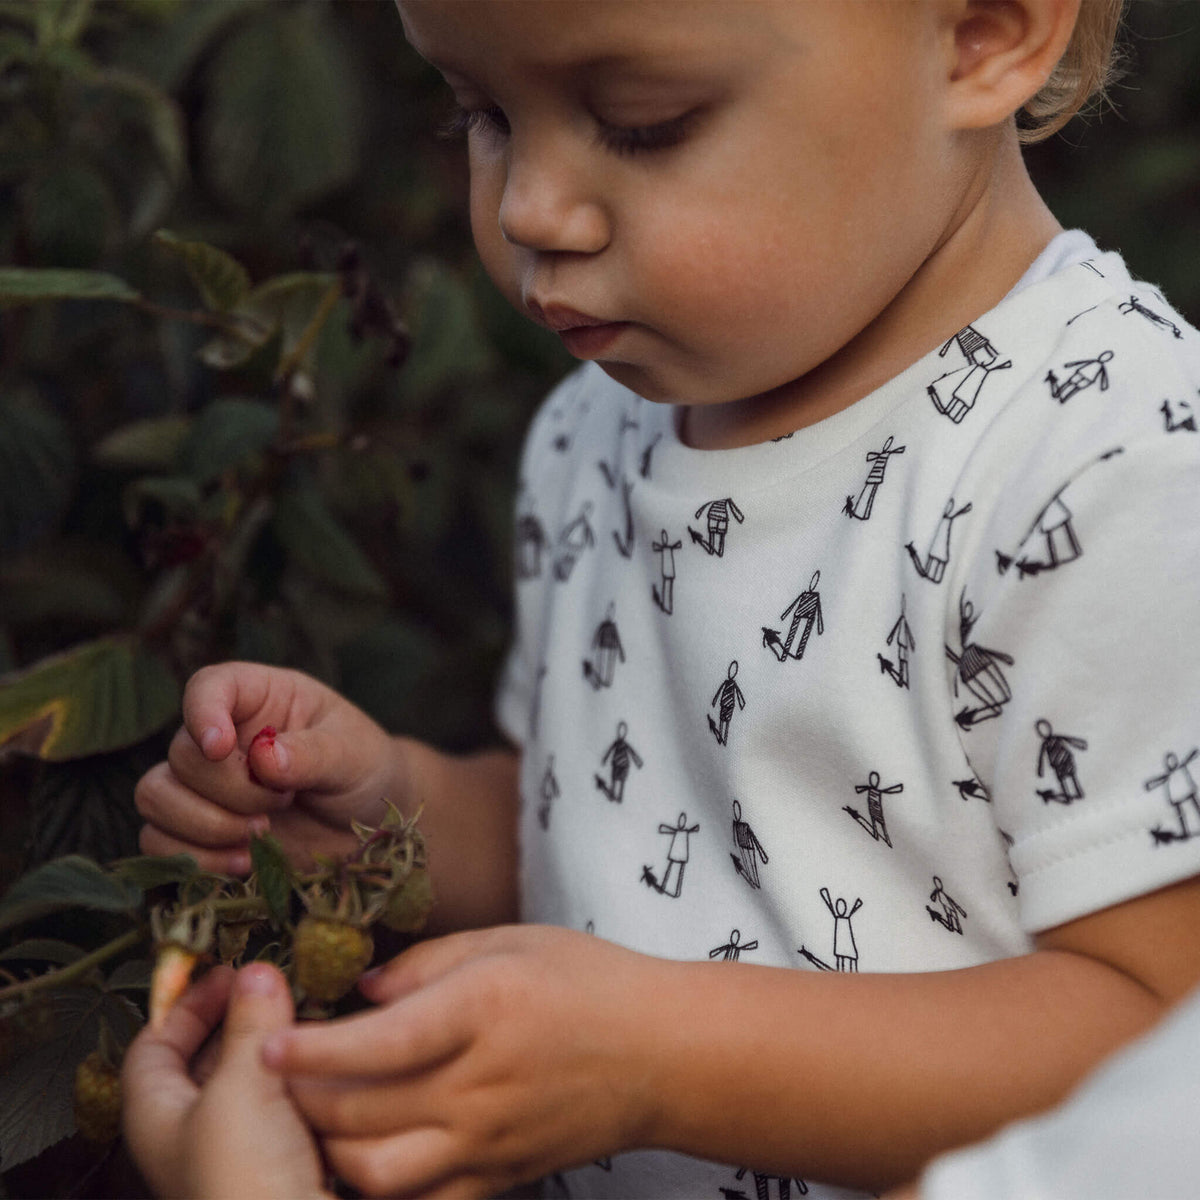 'Community' Organic Cotton Tee - Dinki Human Organic Kids Clothing